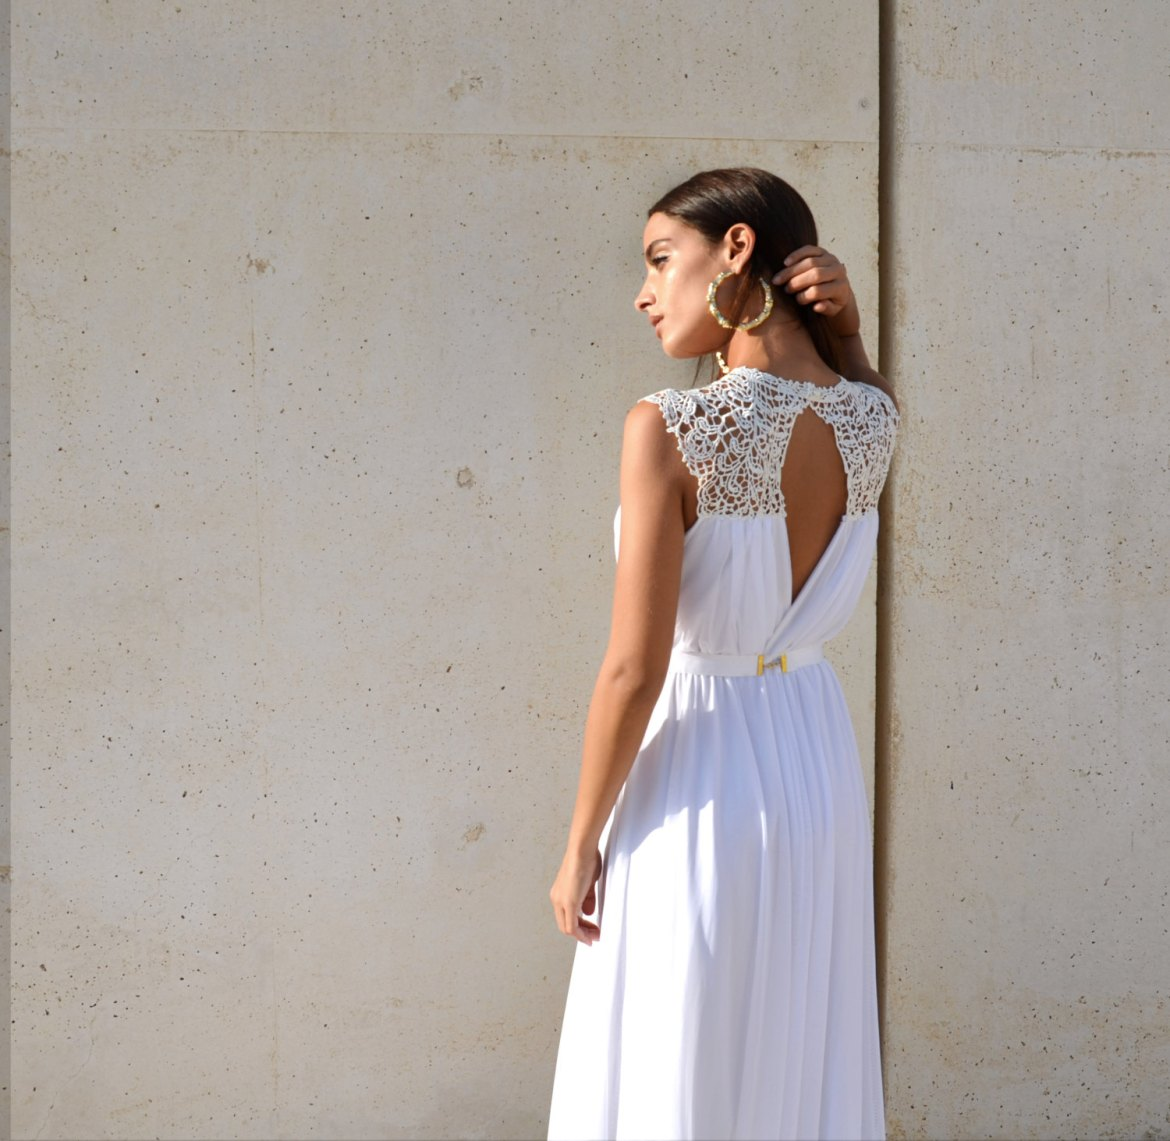 embroidered dress top | dresses boho weddings http://emmalinebride.com/bridal-gowns/dresses-boho-weddings/